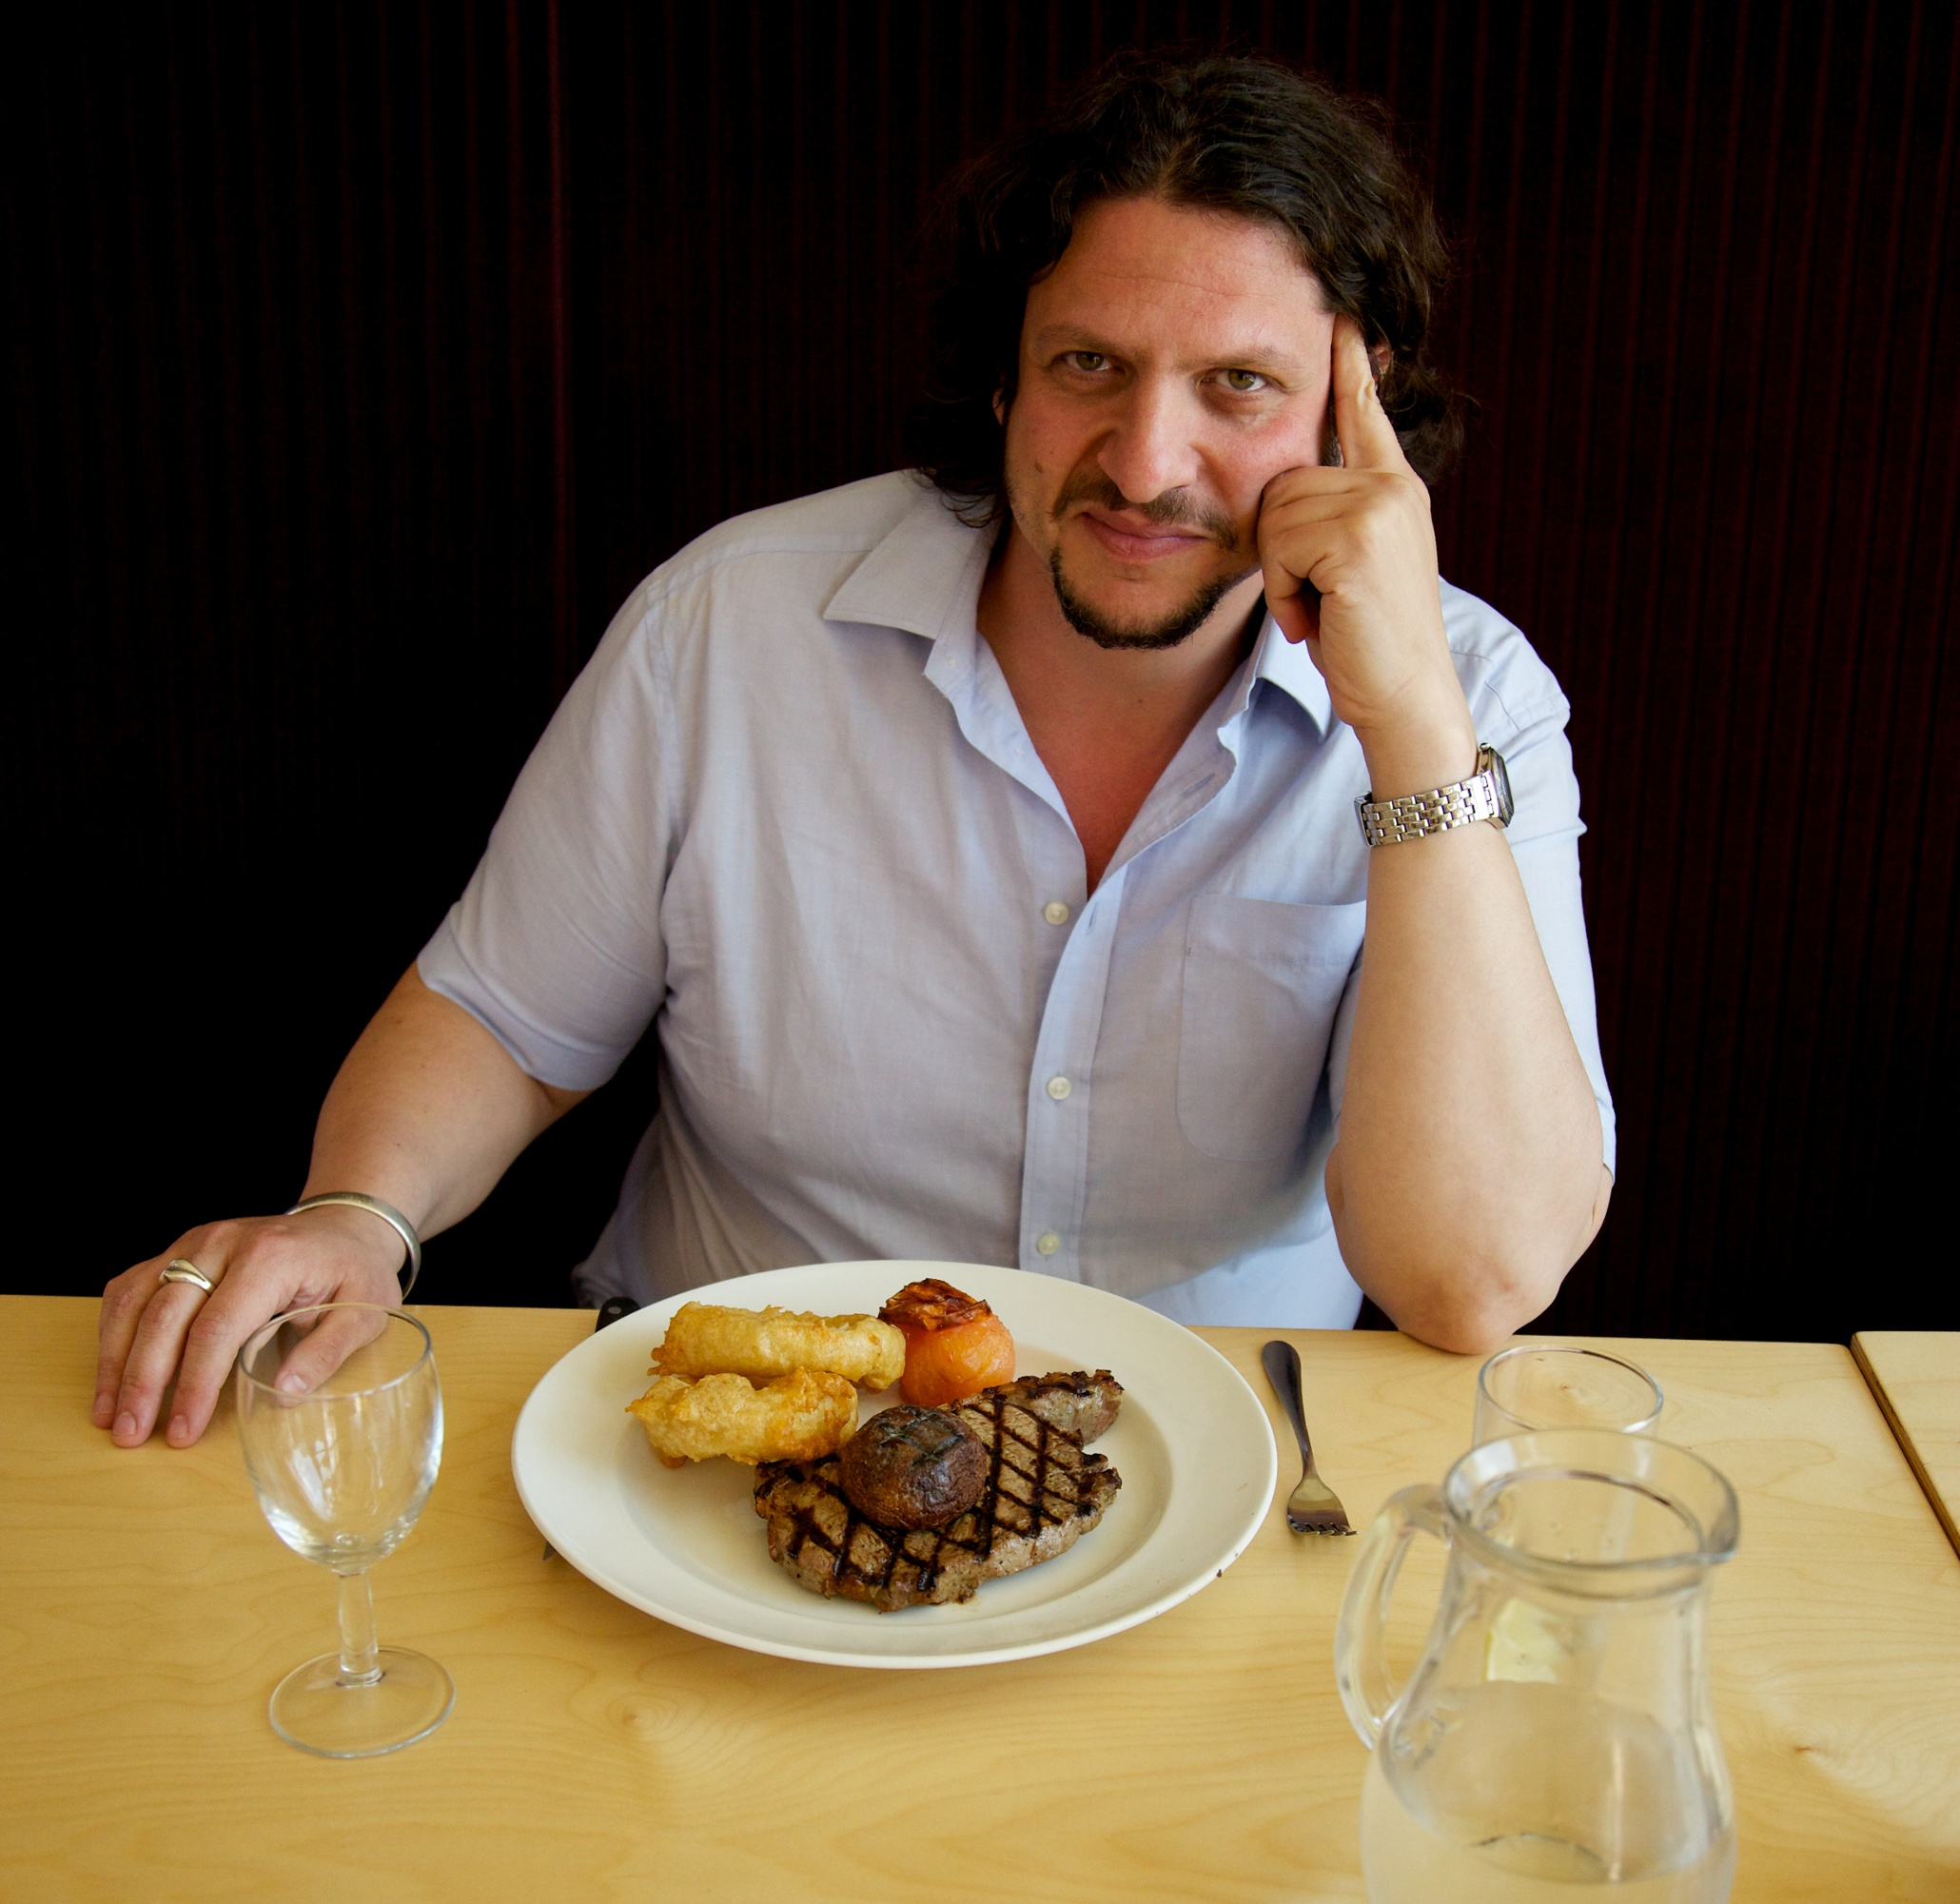 Knives Out: Why We Love Reading Cruel Restaurant Reviews